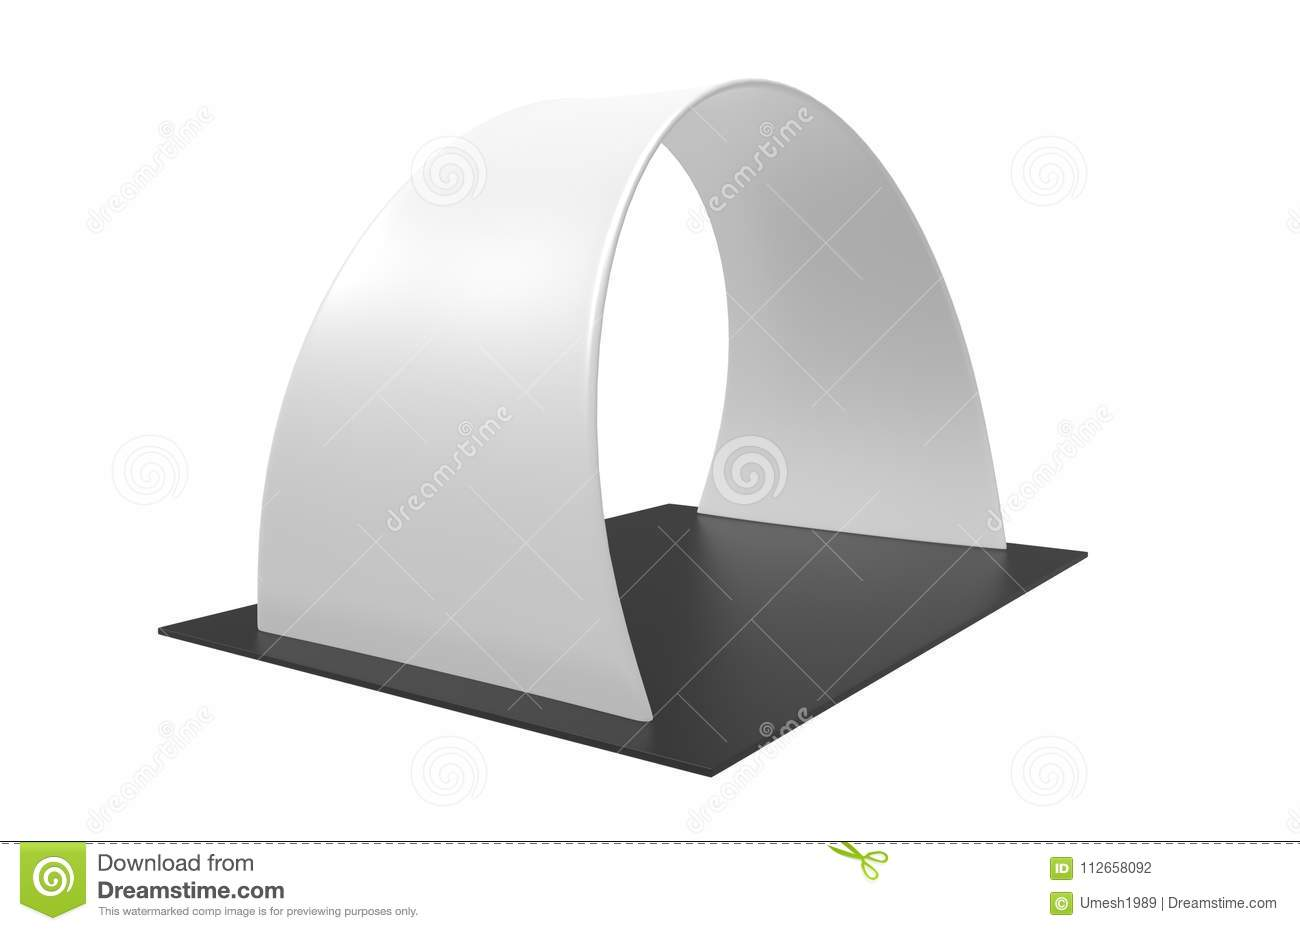 Exhibition Stall Icon : Exhibition booth tension fabric advertising banner curved arch